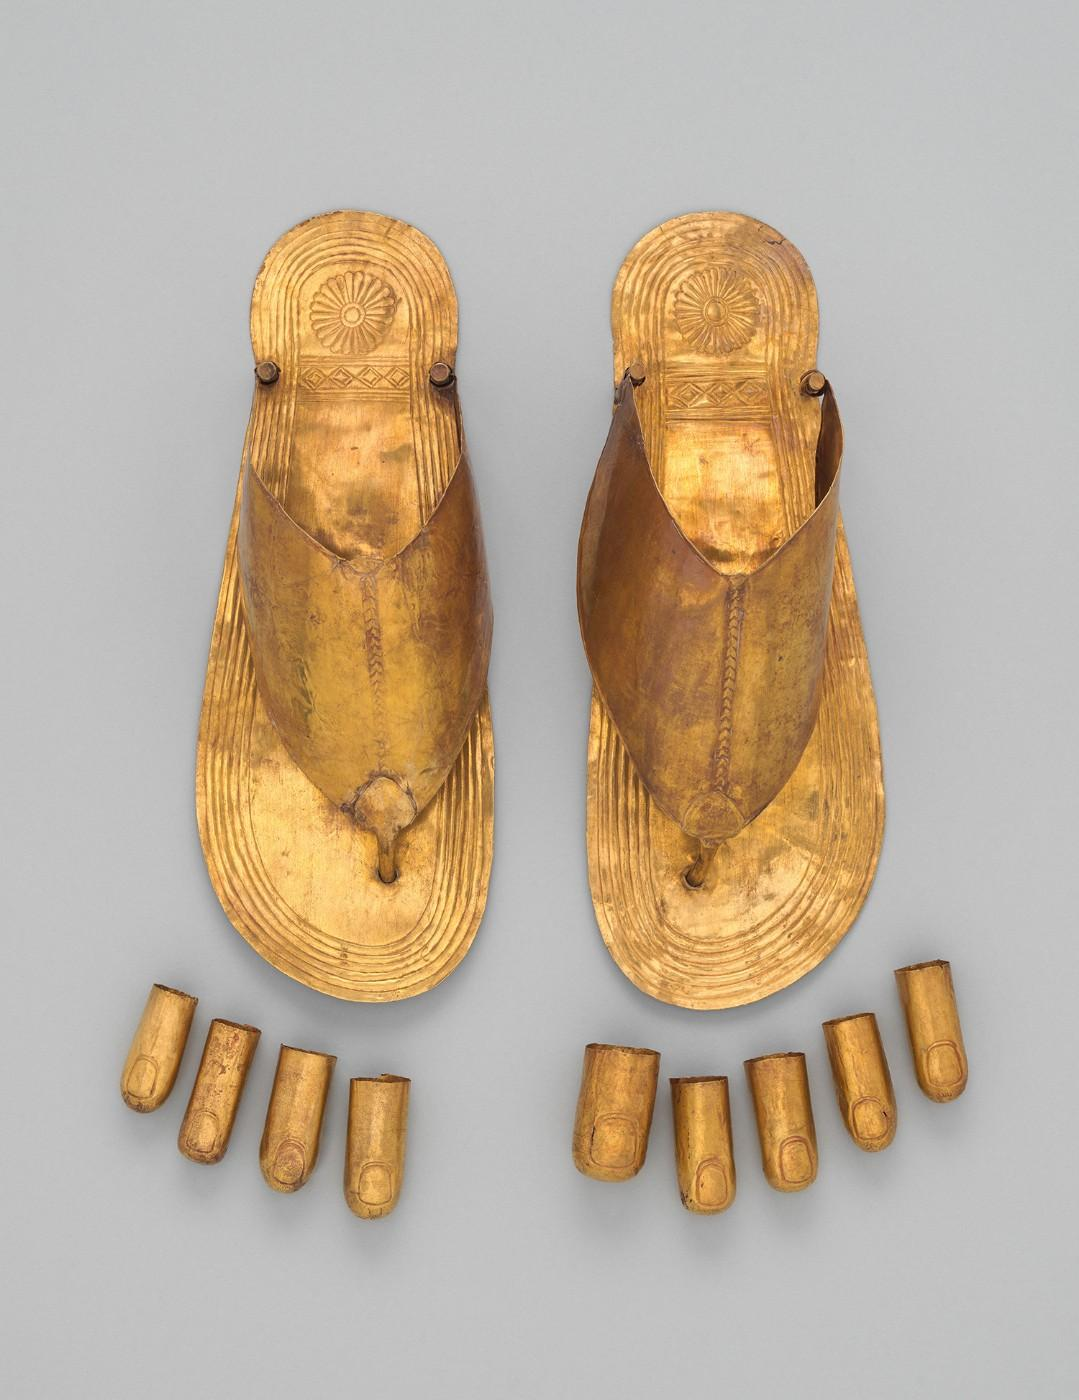 Gold Sandals and Toe Stalls. Egyptian, reign of Thutmose III, ca. 1479–1425 B.C.